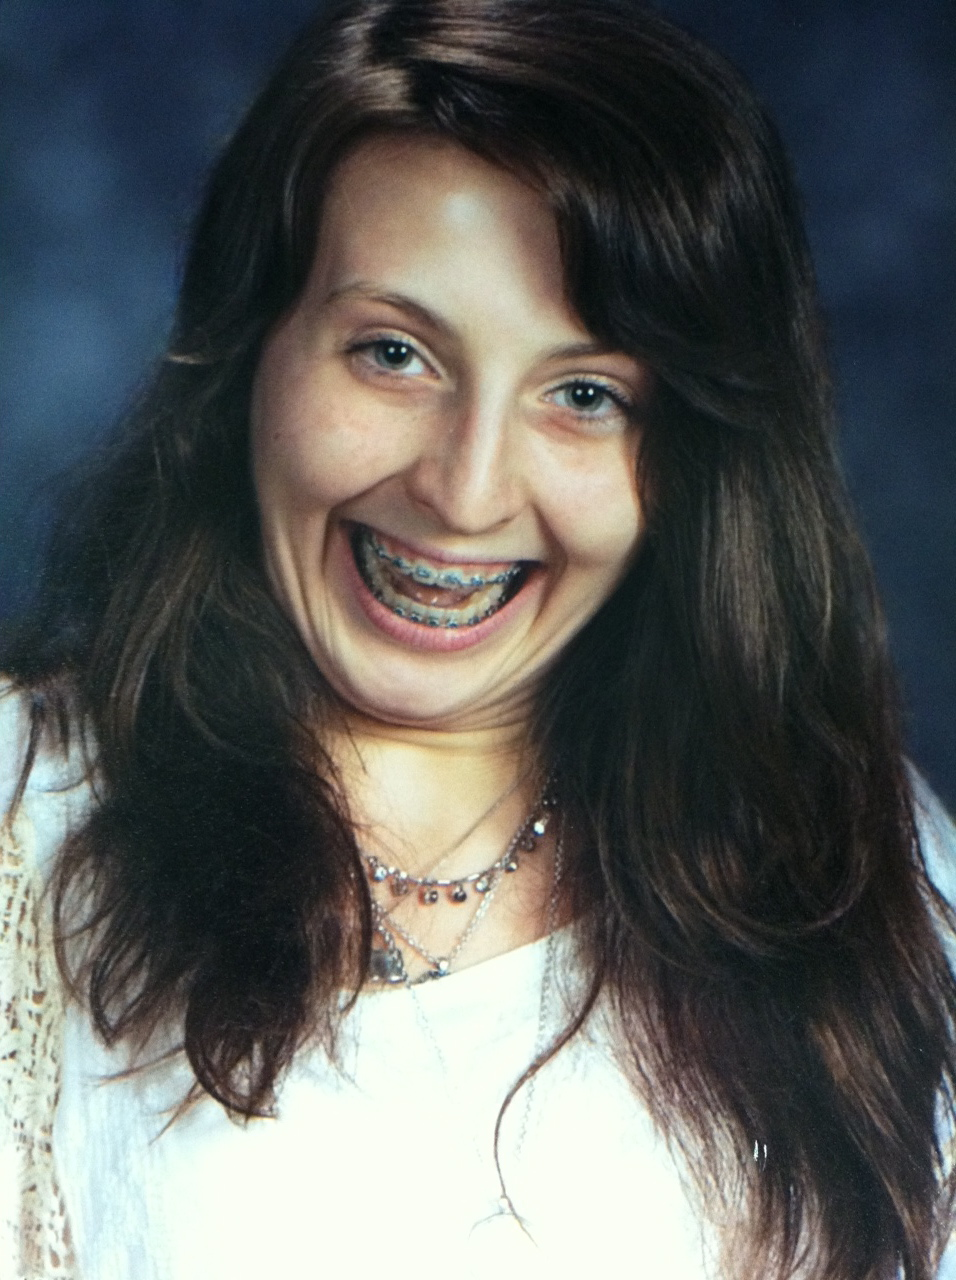 funny braces picture, funny school picture